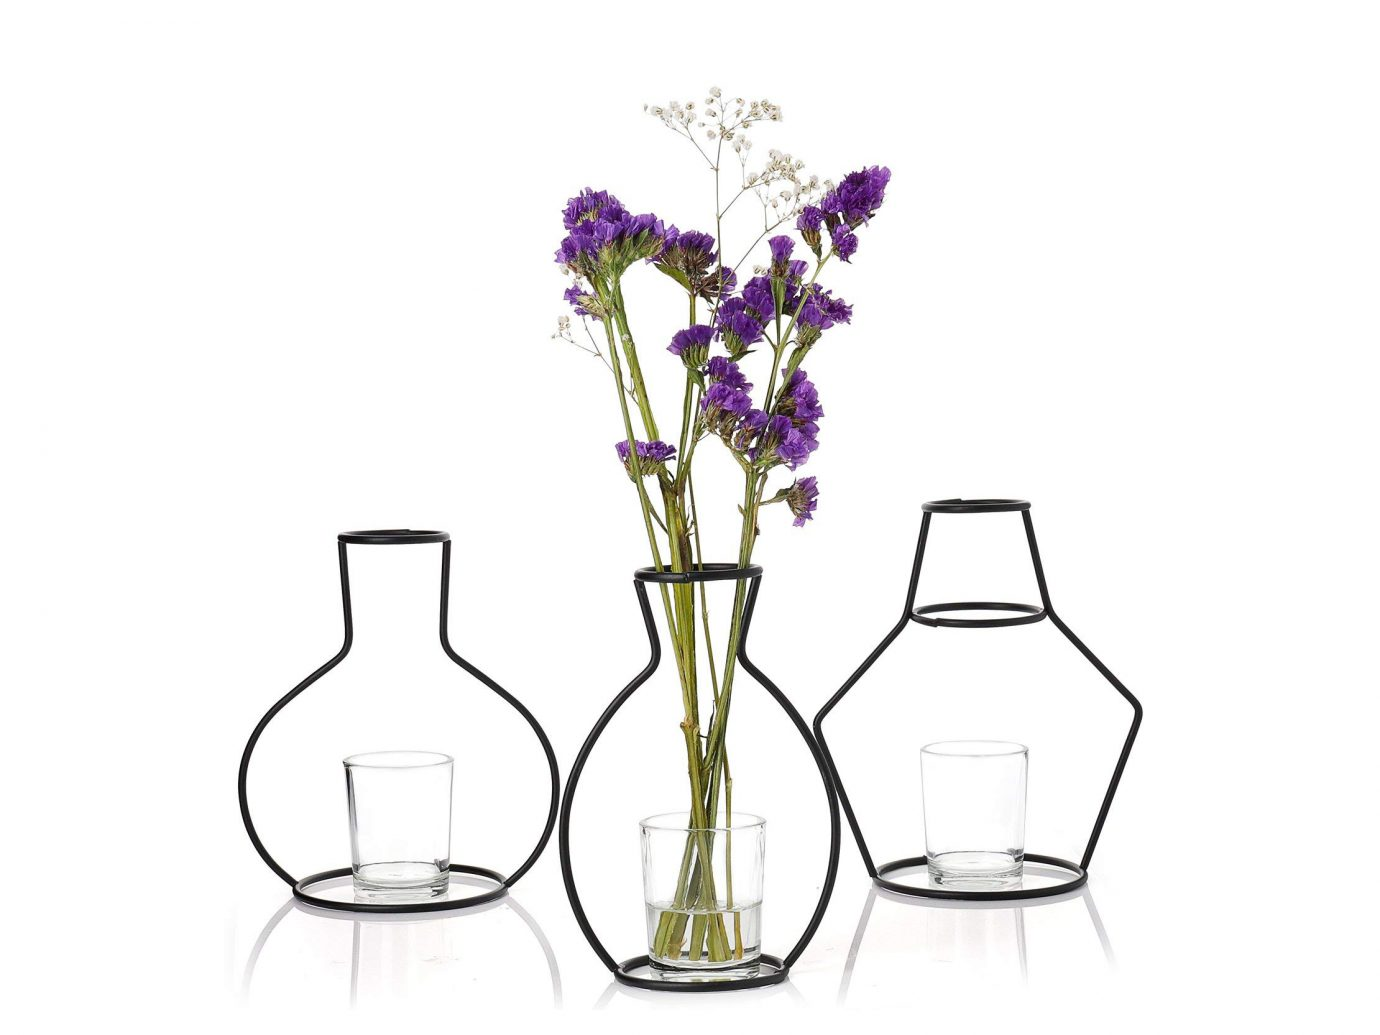 Greenaholics Decorative Vases